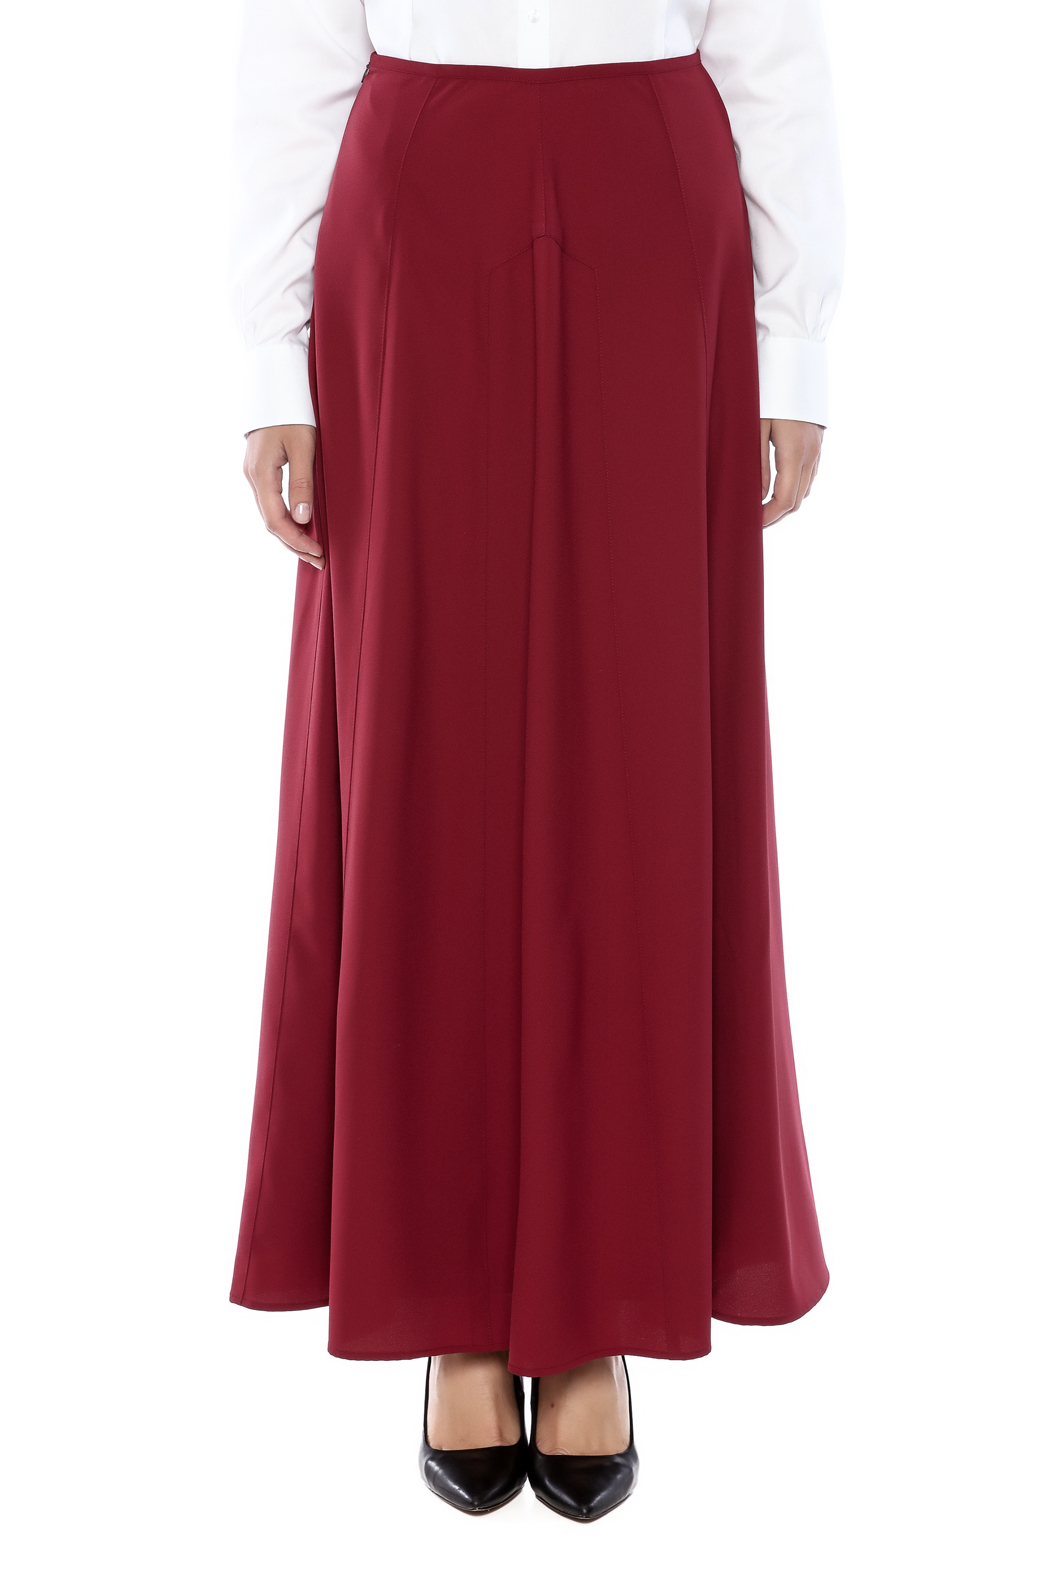 The Cue A Line Maxi Skirt - Side Cropped Image